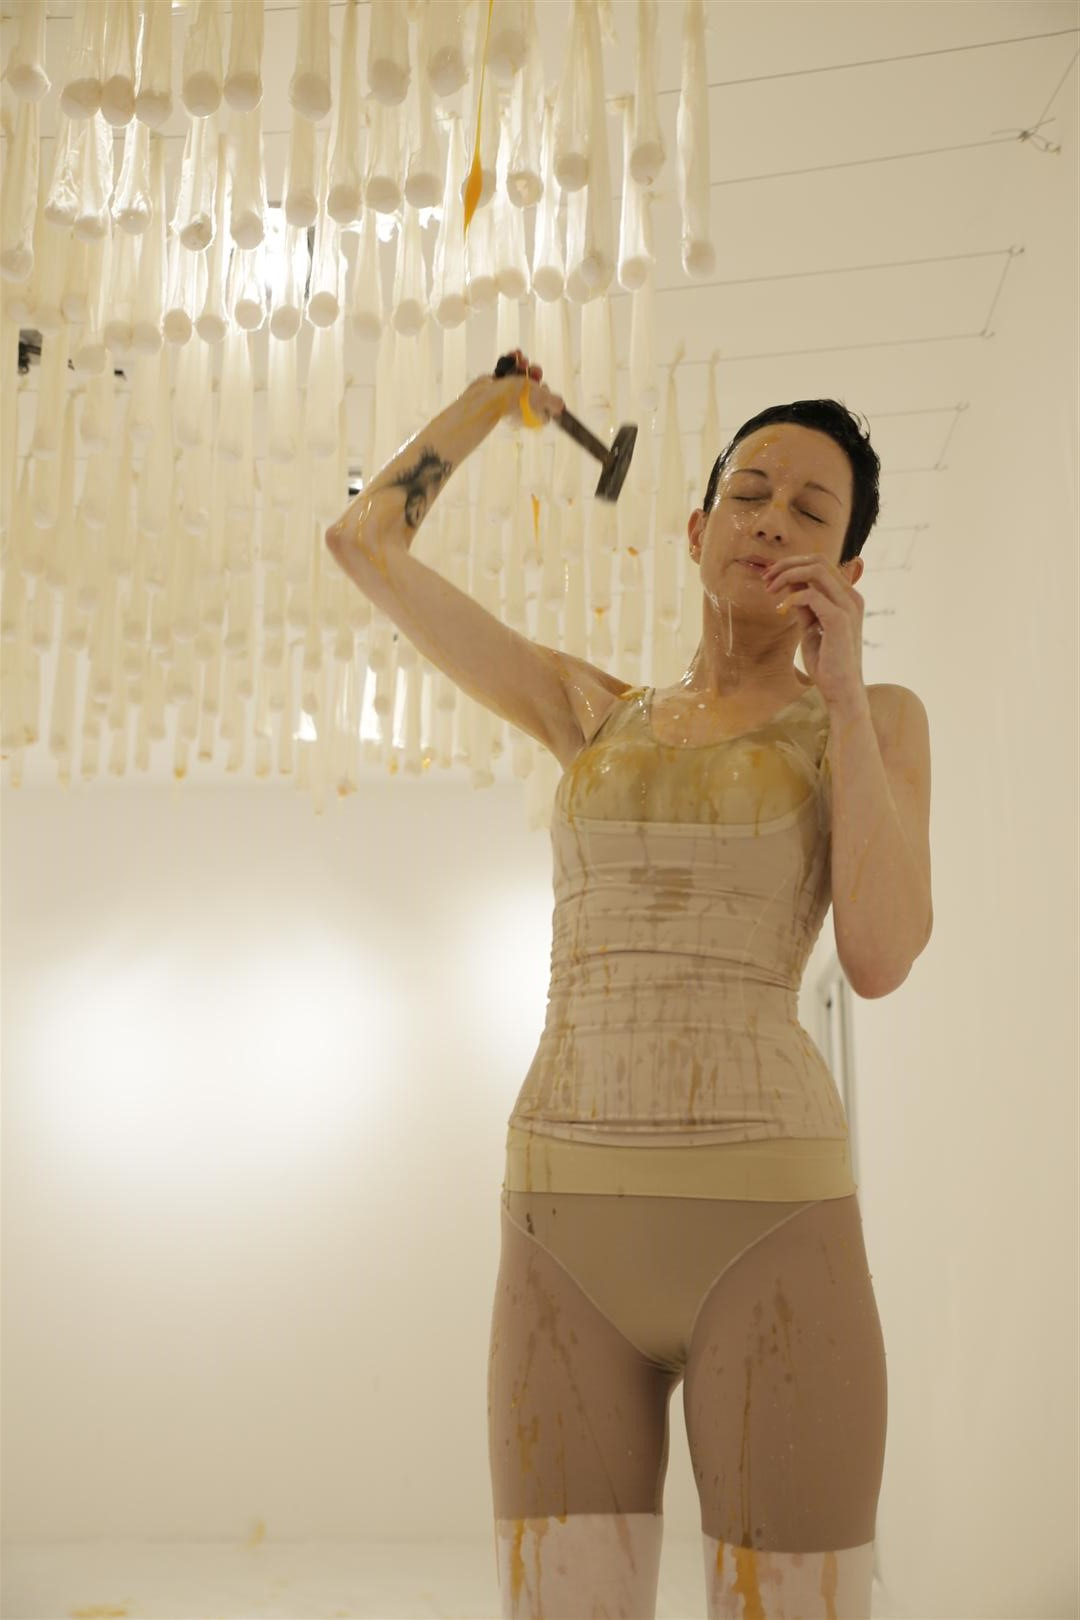 A woman in a leotard is covered with broken eggs raining down from the ceiling, which she strikes with a hammer